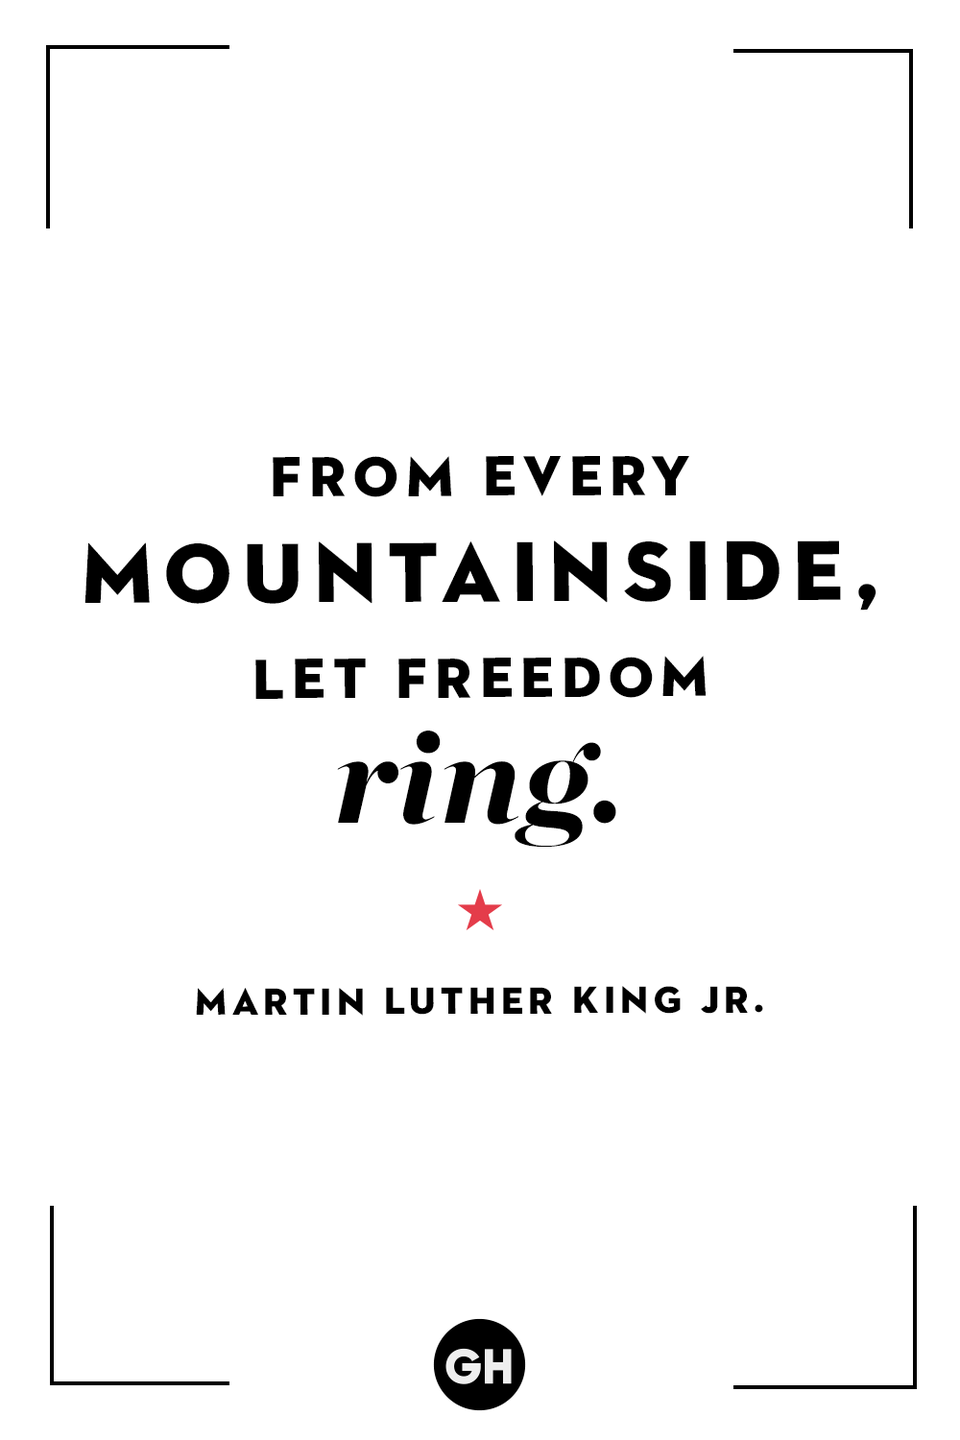 <p>From every mountainside, let freedom ring.</p>